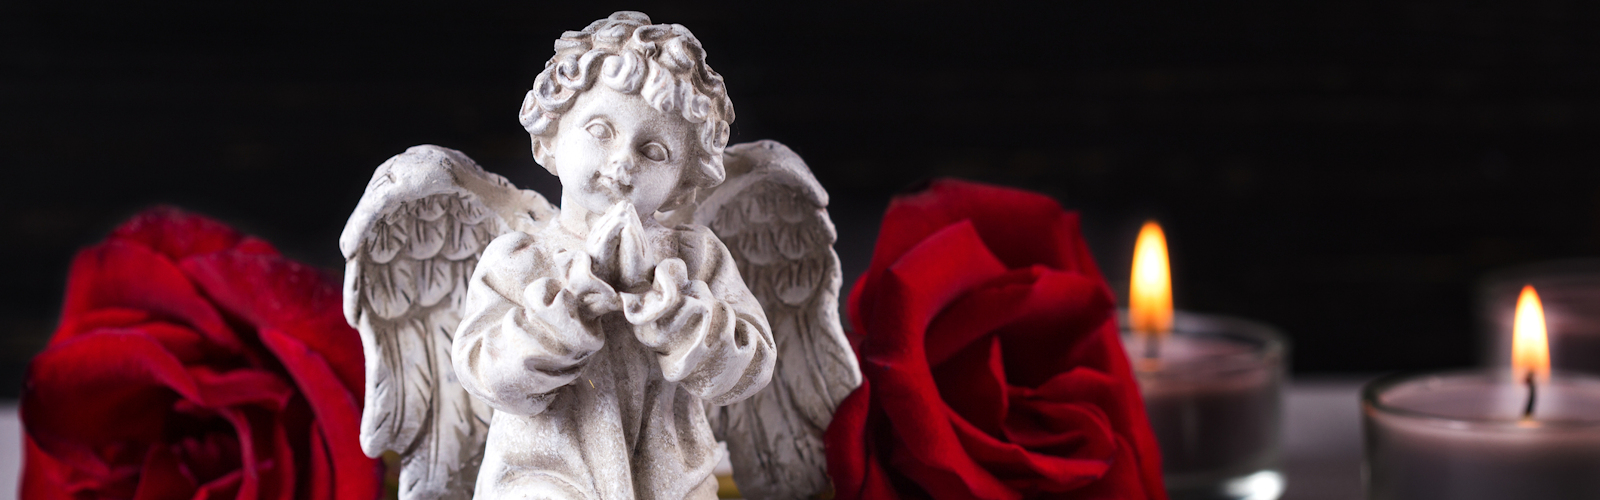 Little angel, red roses and burning candles on dark background